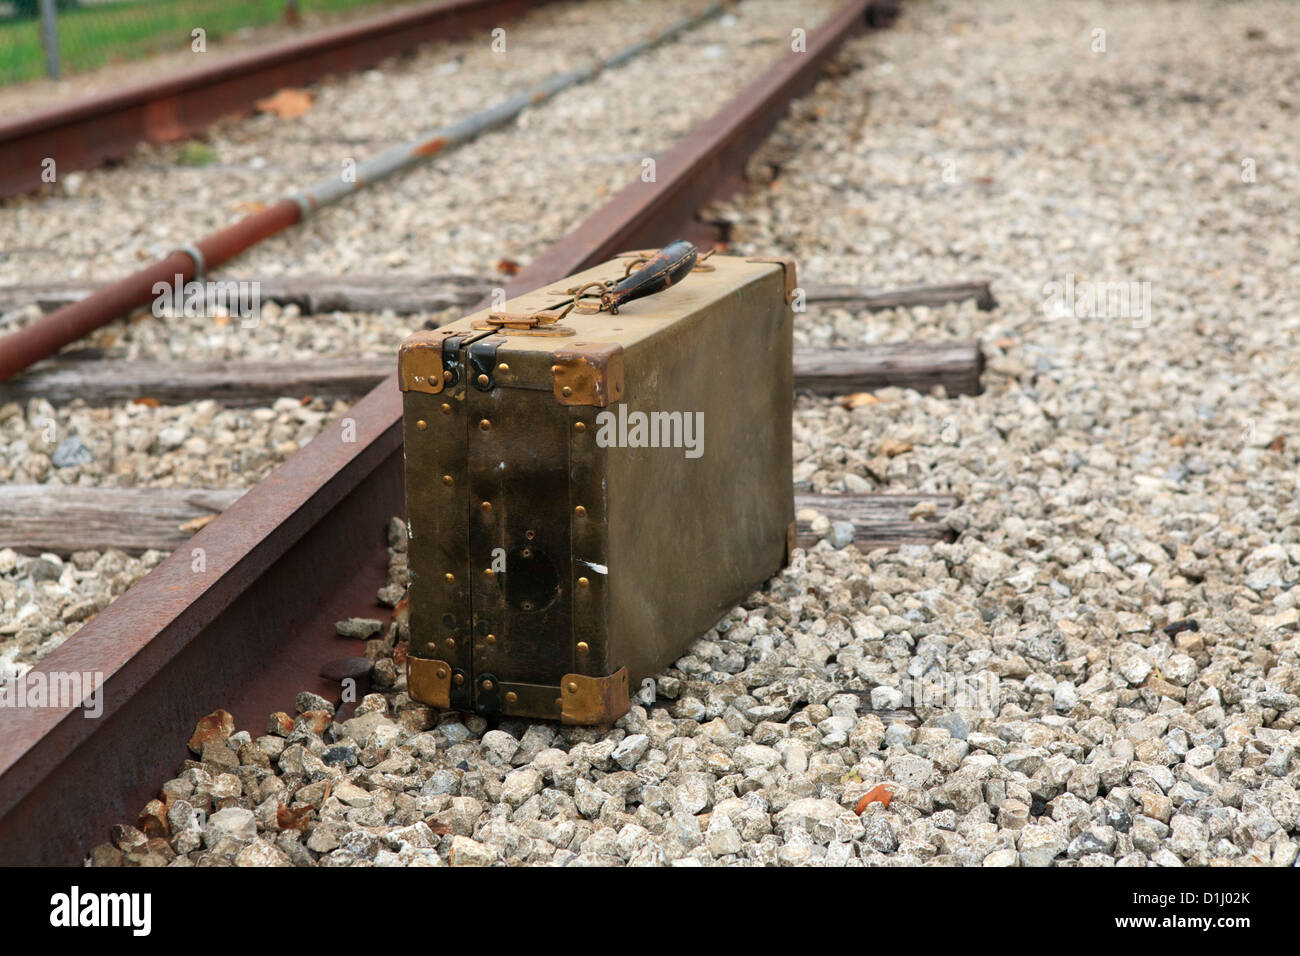 Old travel suitcase by the side of the railroad tracks. - Stock Image